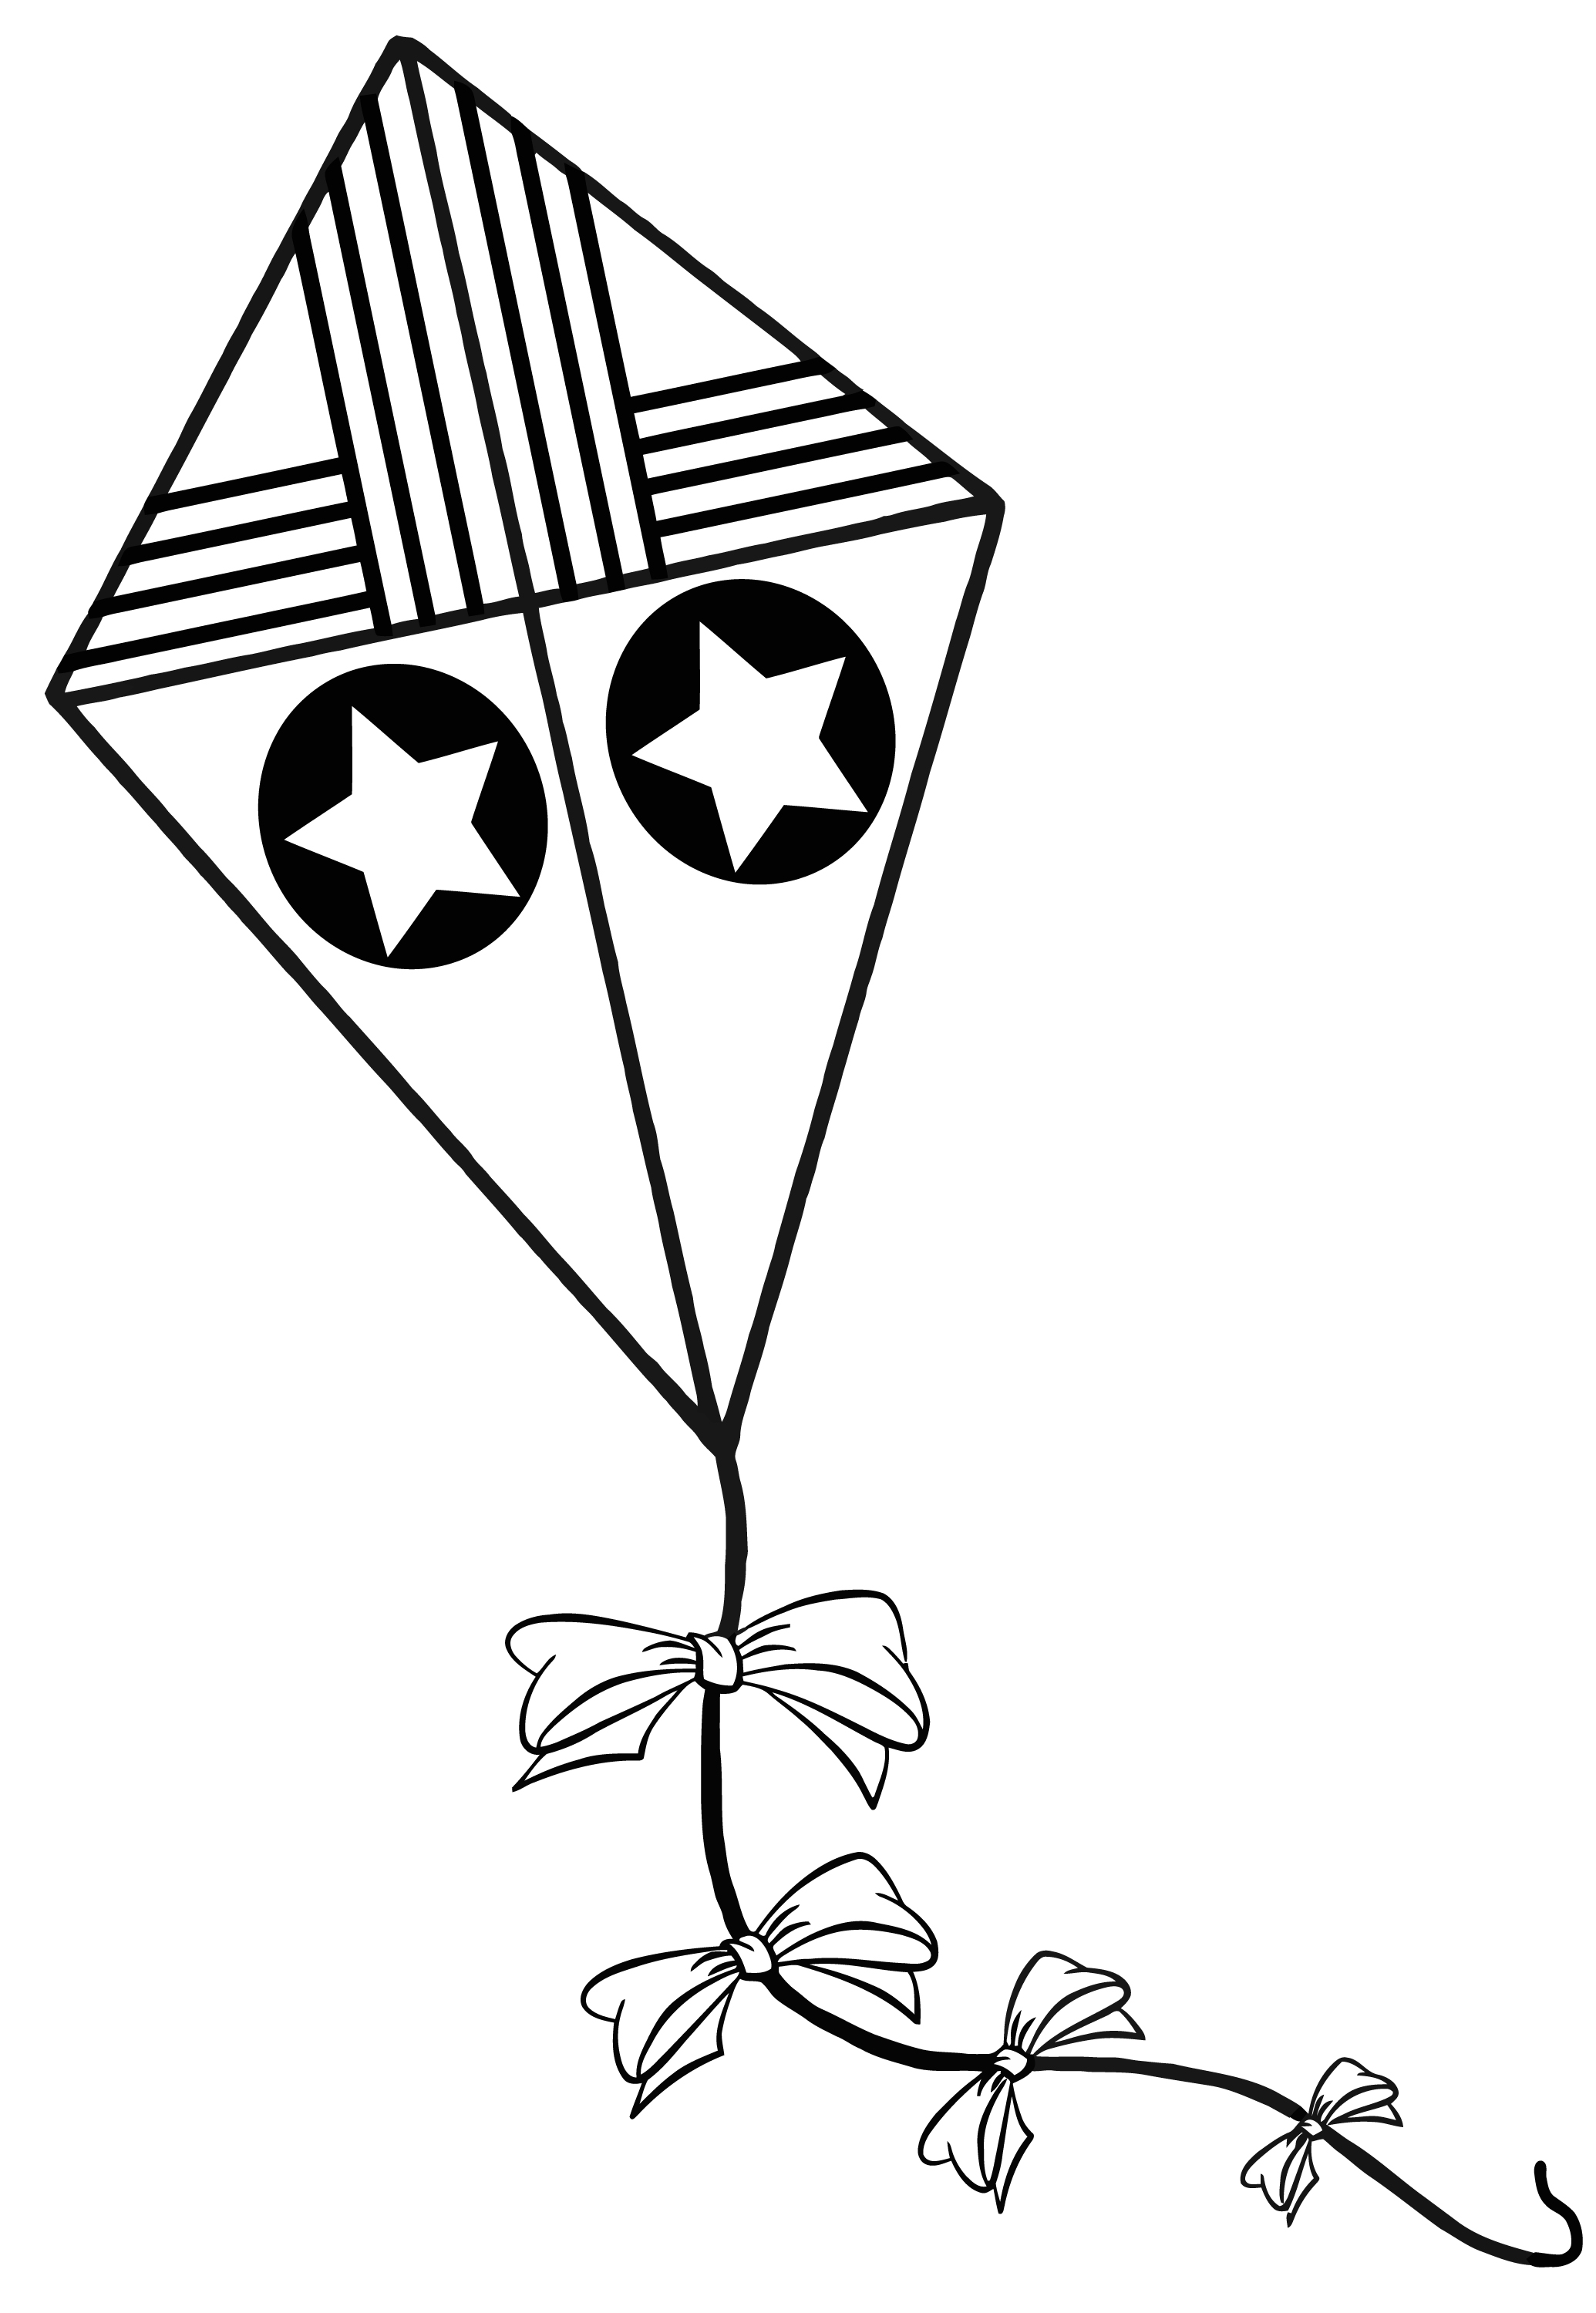 Kite Coloring Pages Clipart Panda